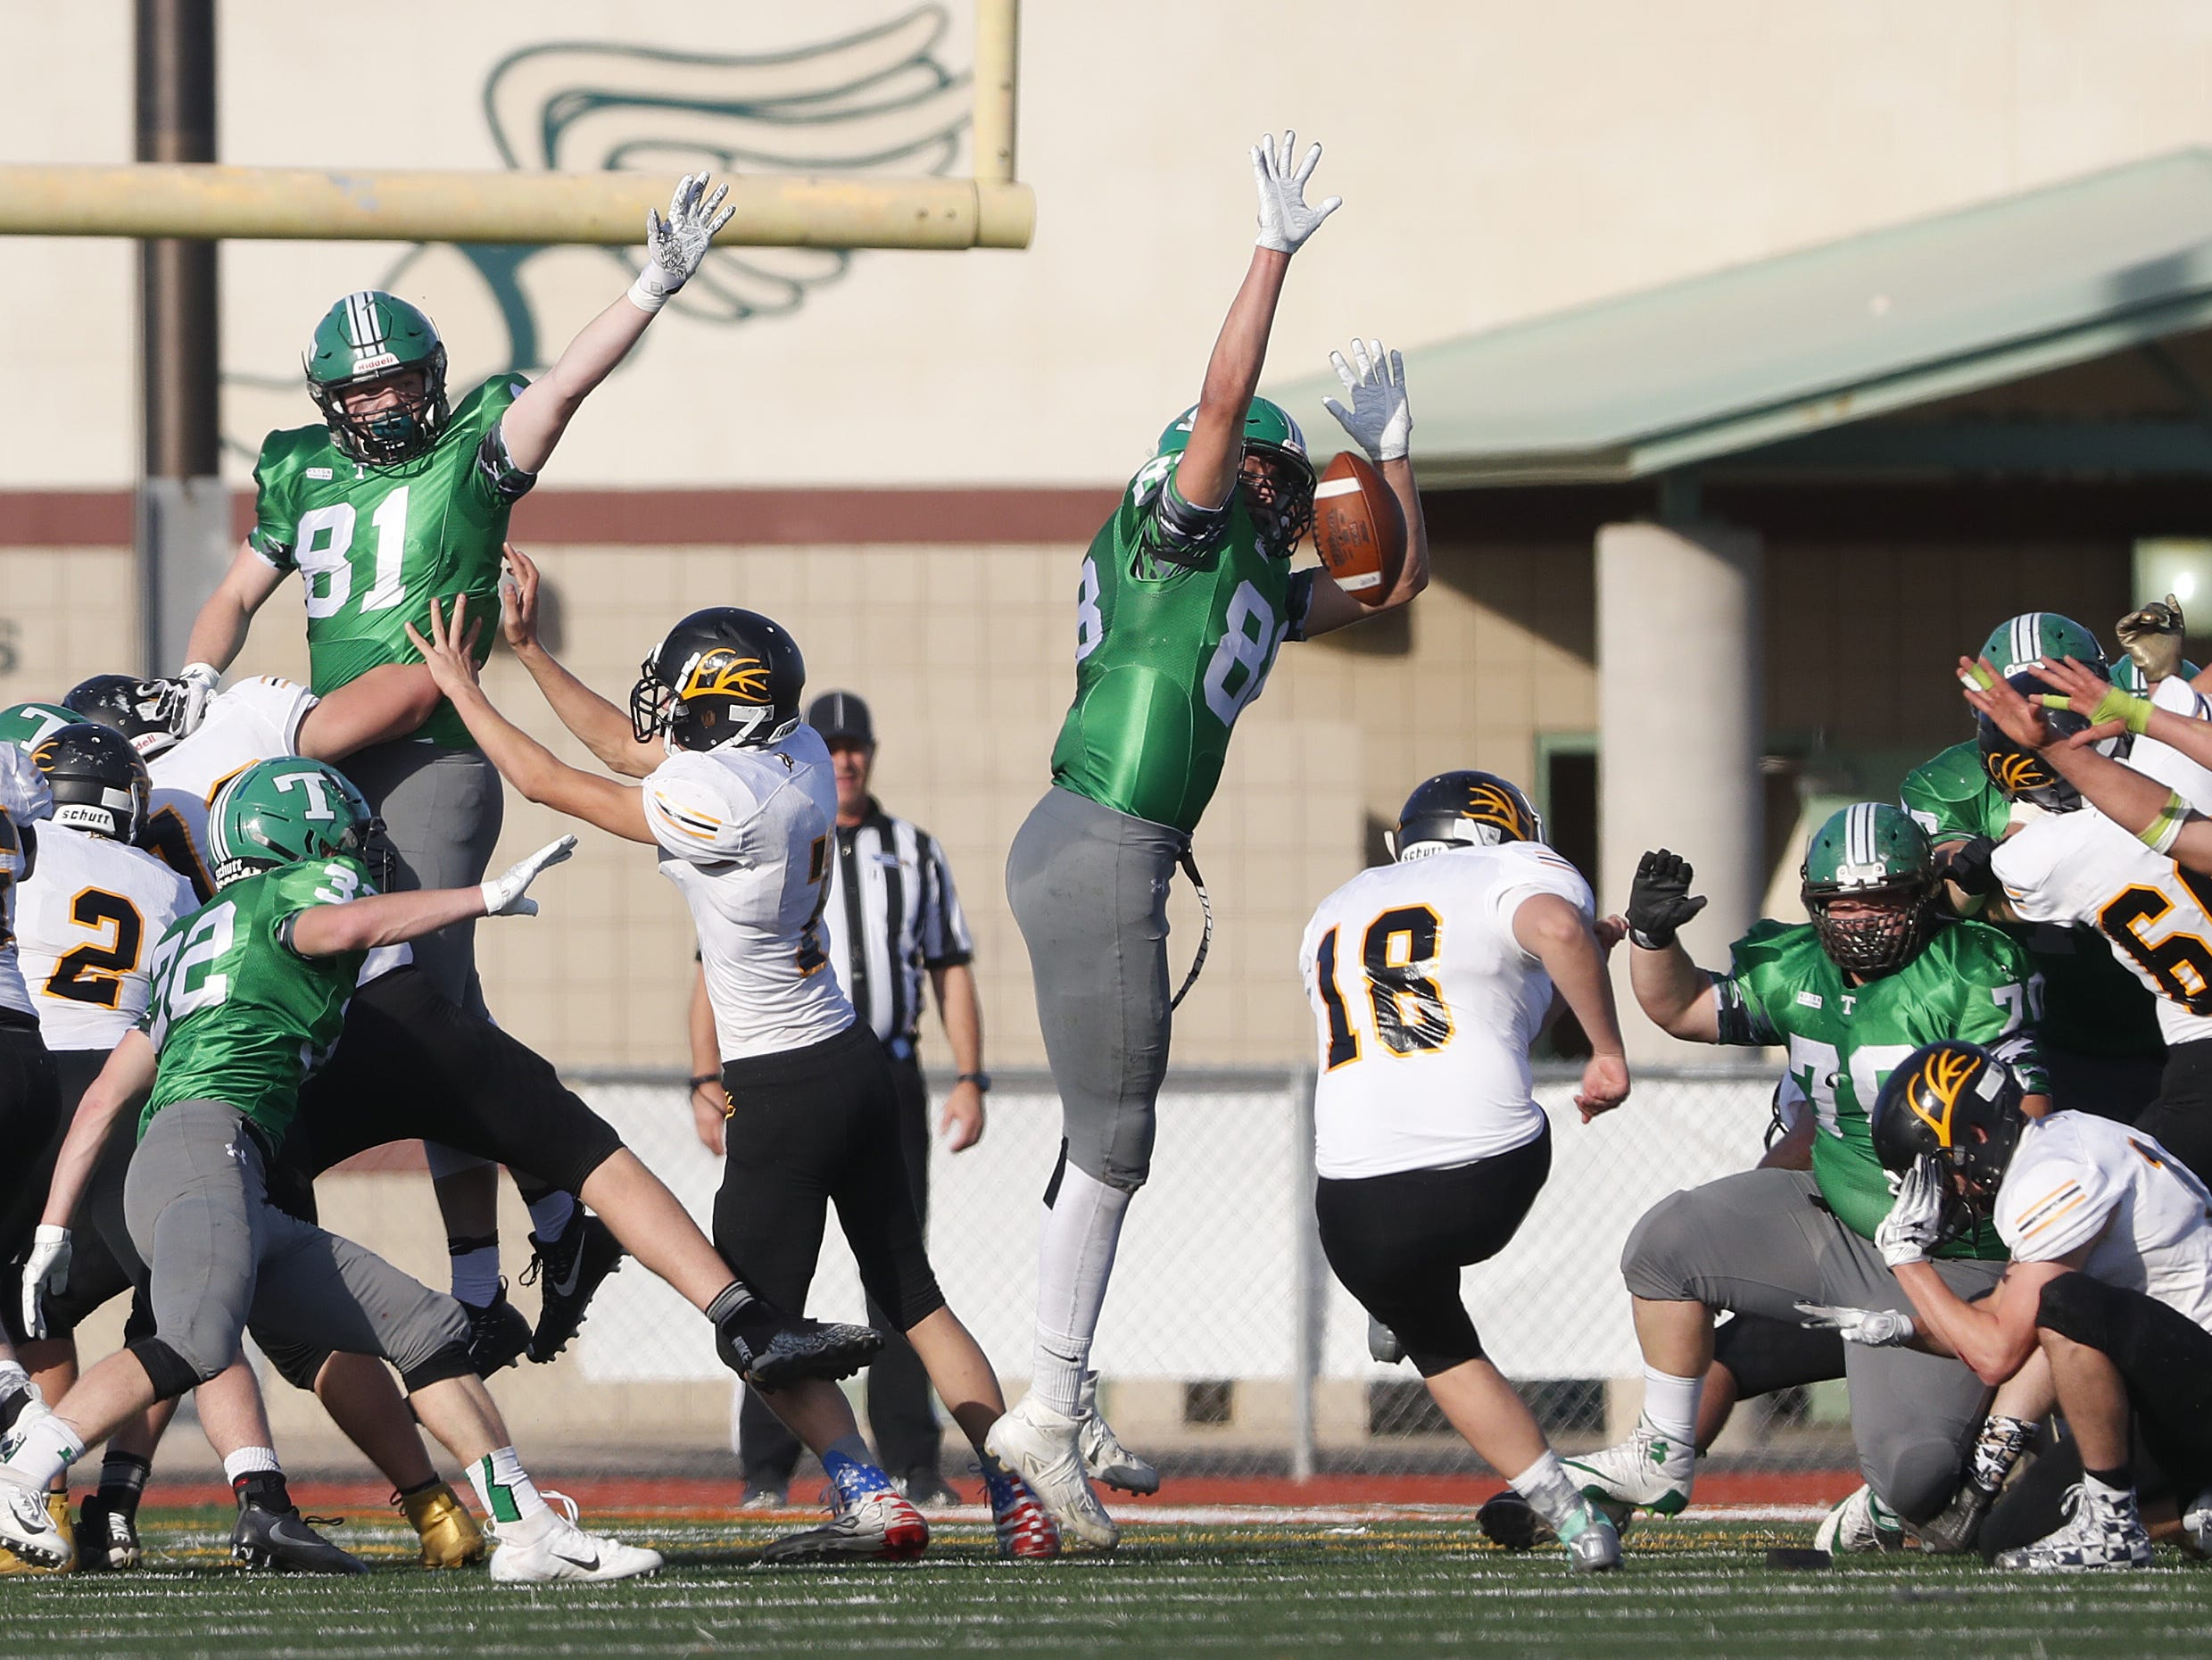 Thatcher's Cole Motes (88) blocks a field goal from Round Valley's Sergio Camunez (18) during the 2A State Championship Football game at Campo Verde High School in Gilbert, Ariz. on November 23, 2018.